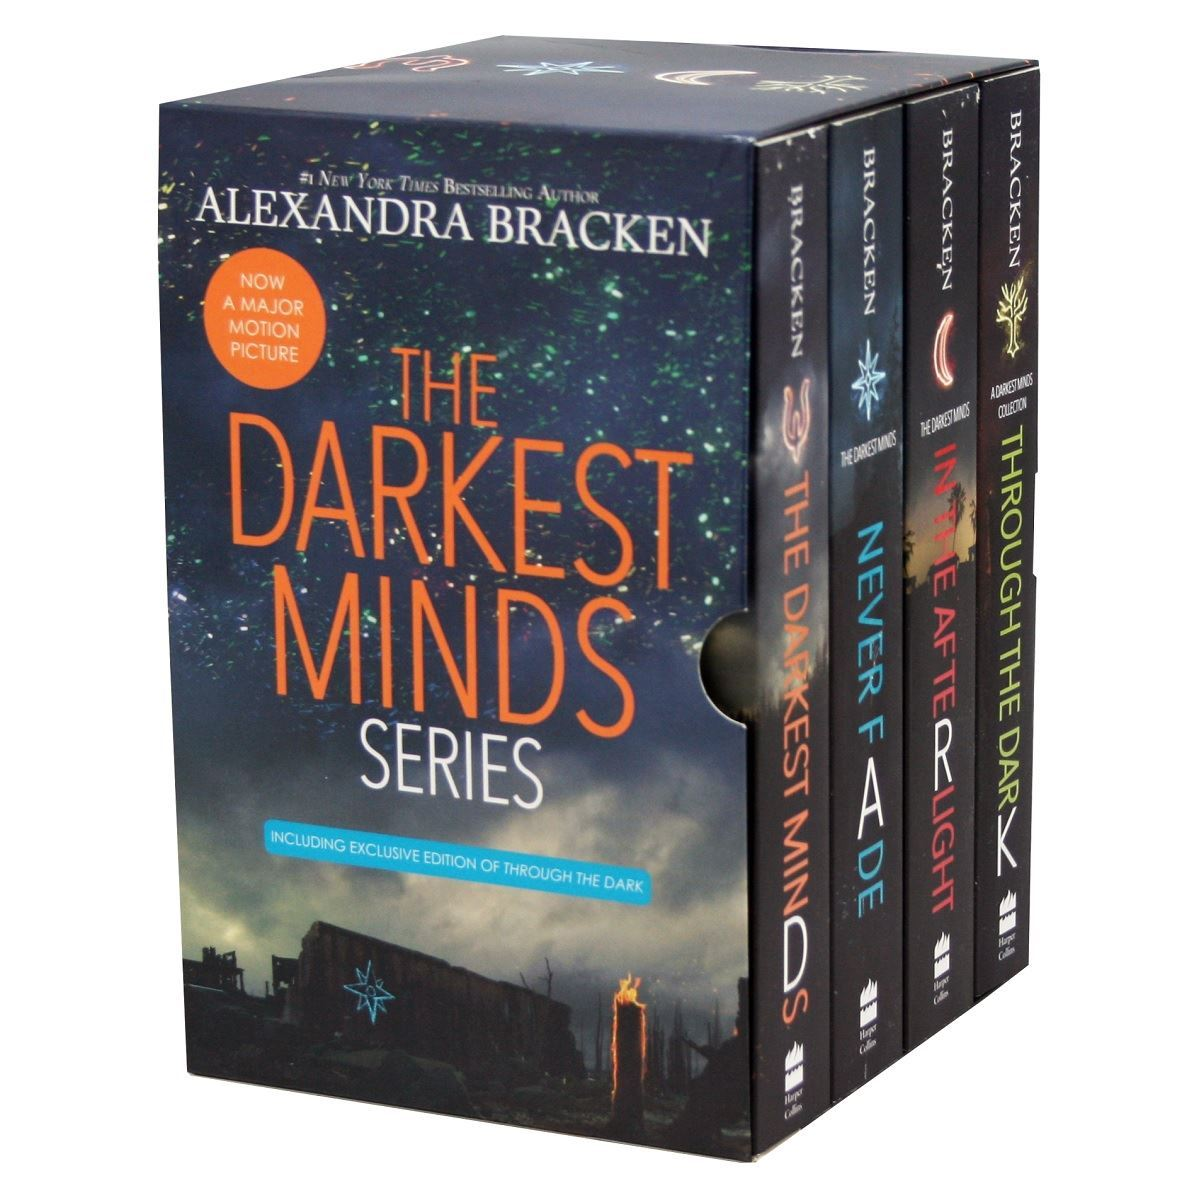 The Darkest Minds Box SetThe Darkest Minds